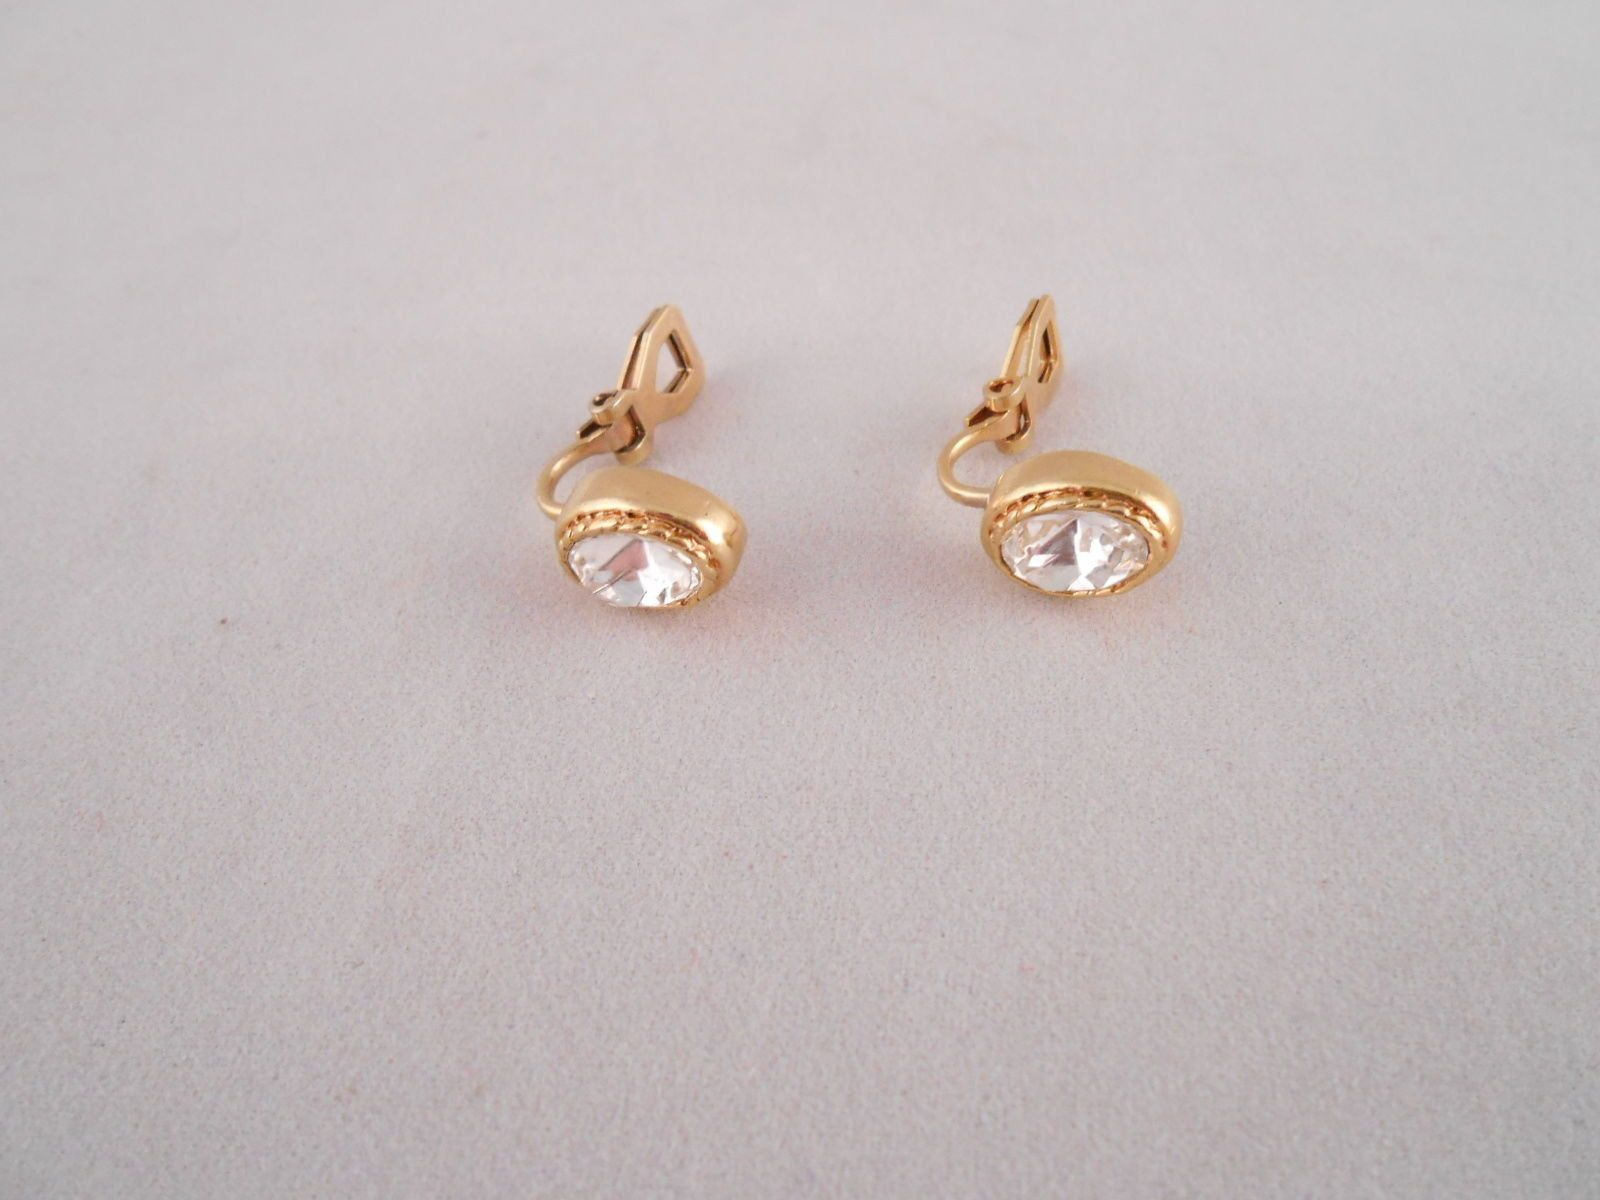 Gold And Diamond Earrings Clip On Back Costume Jewelry